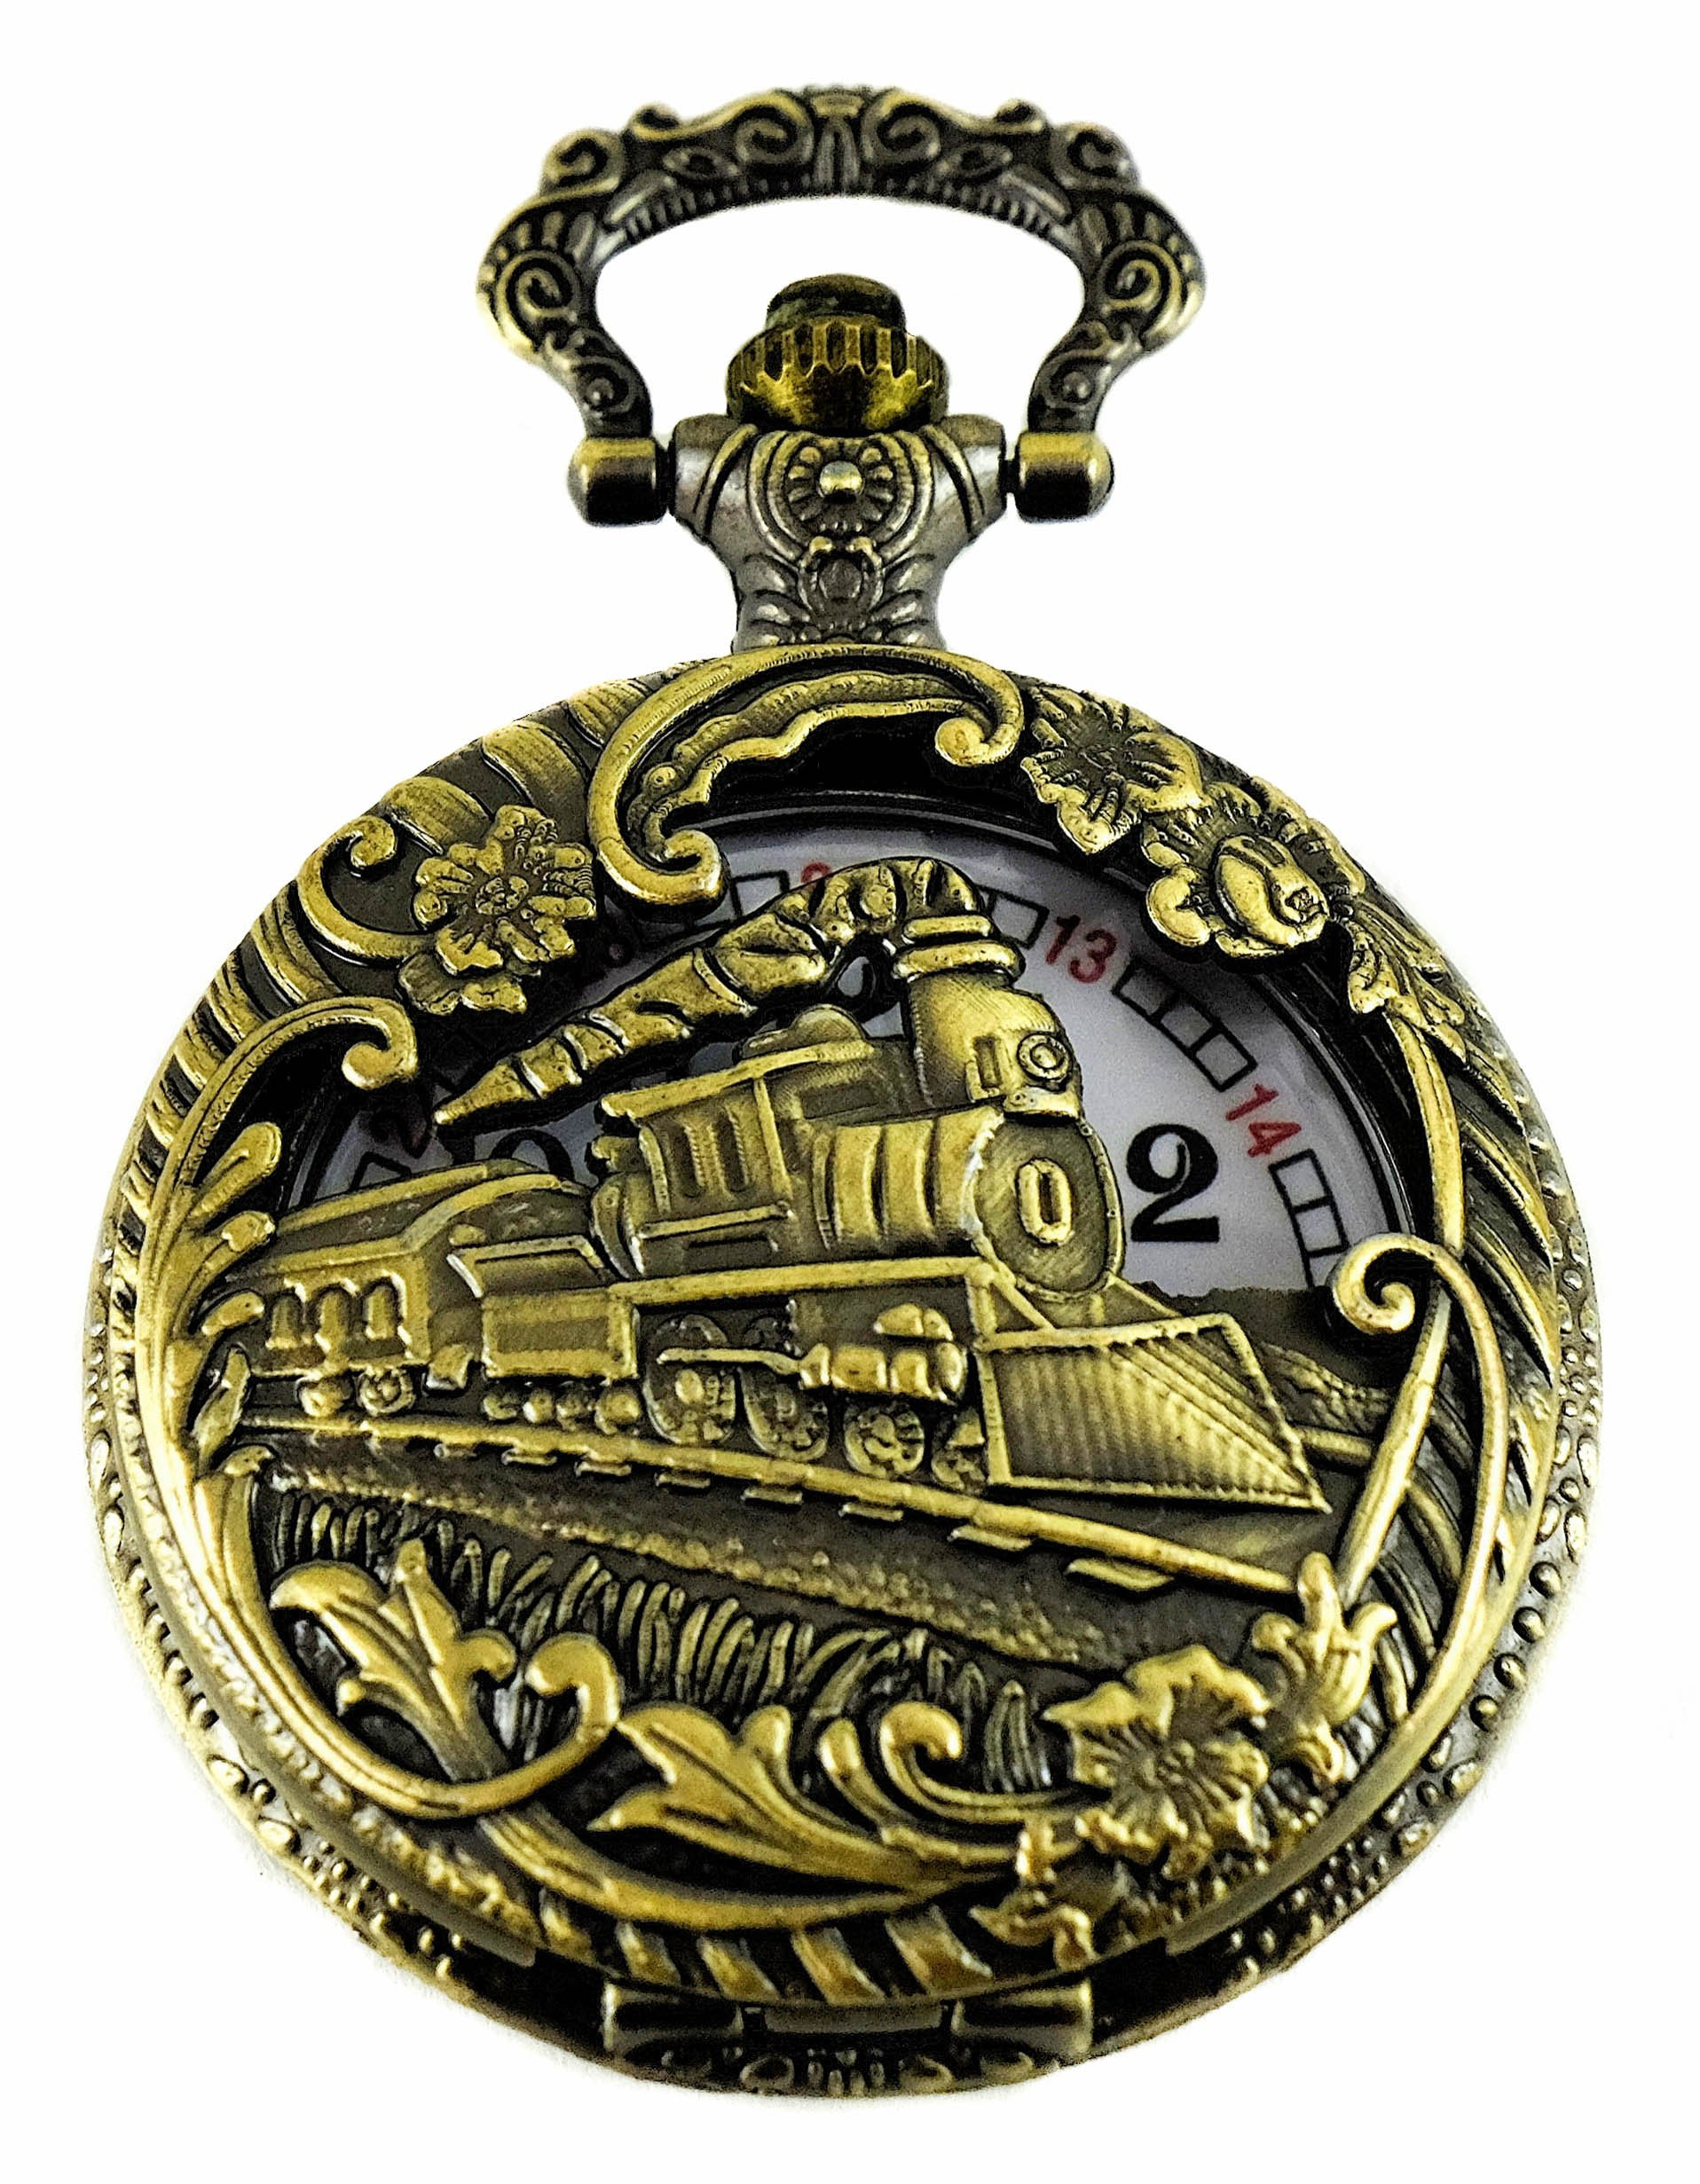 150 Canada 2017 Birthday Regulation Railway Pocket Watch 3 of Limited Collection with Japanese Movement, Licence C-12242